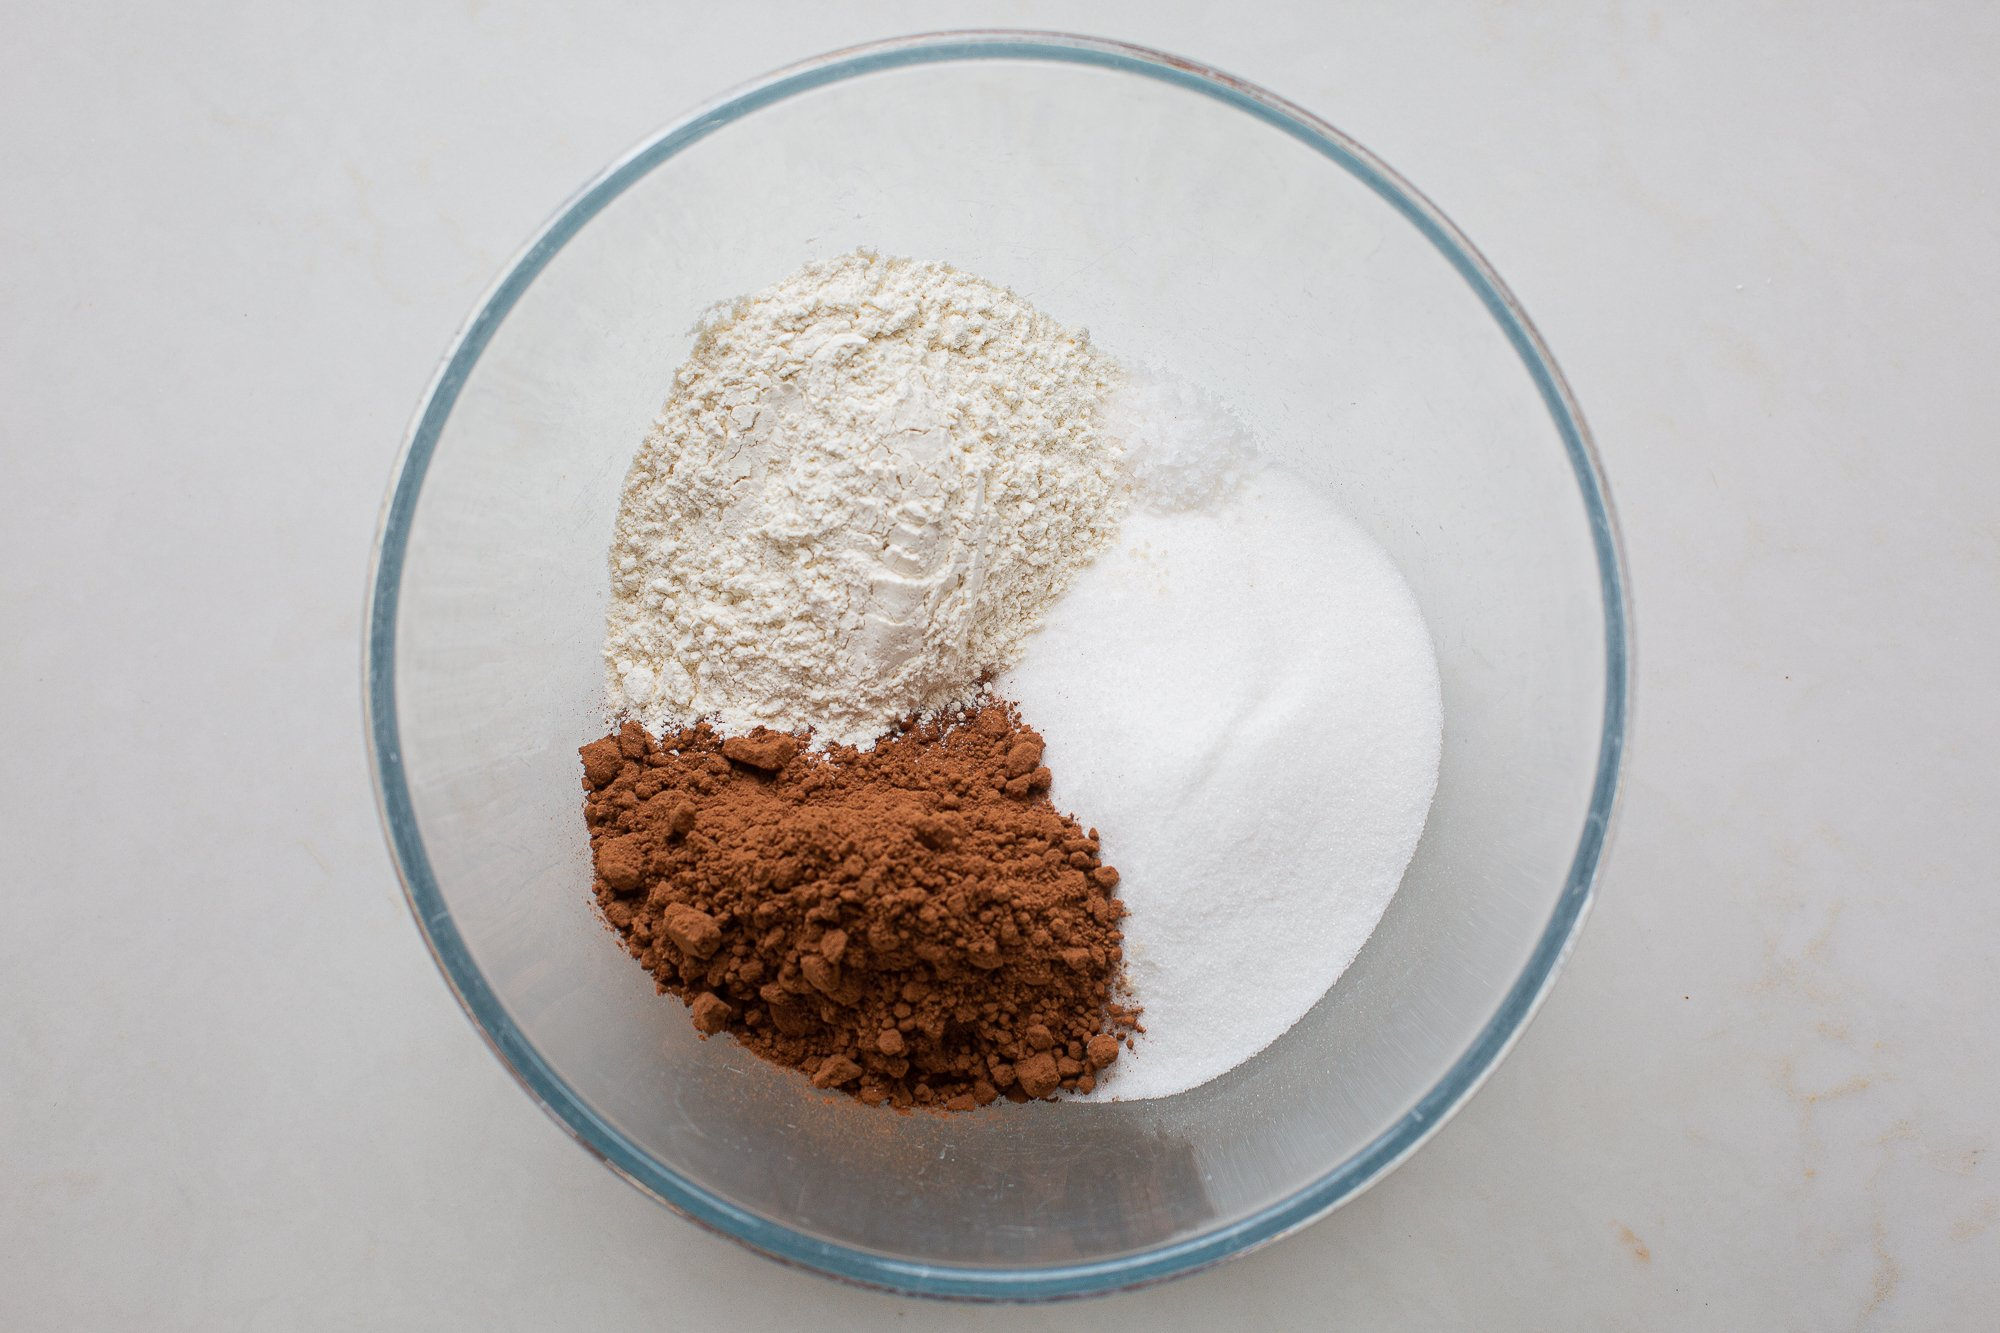 flour cocoa, sugar and salt in a mixing bowl